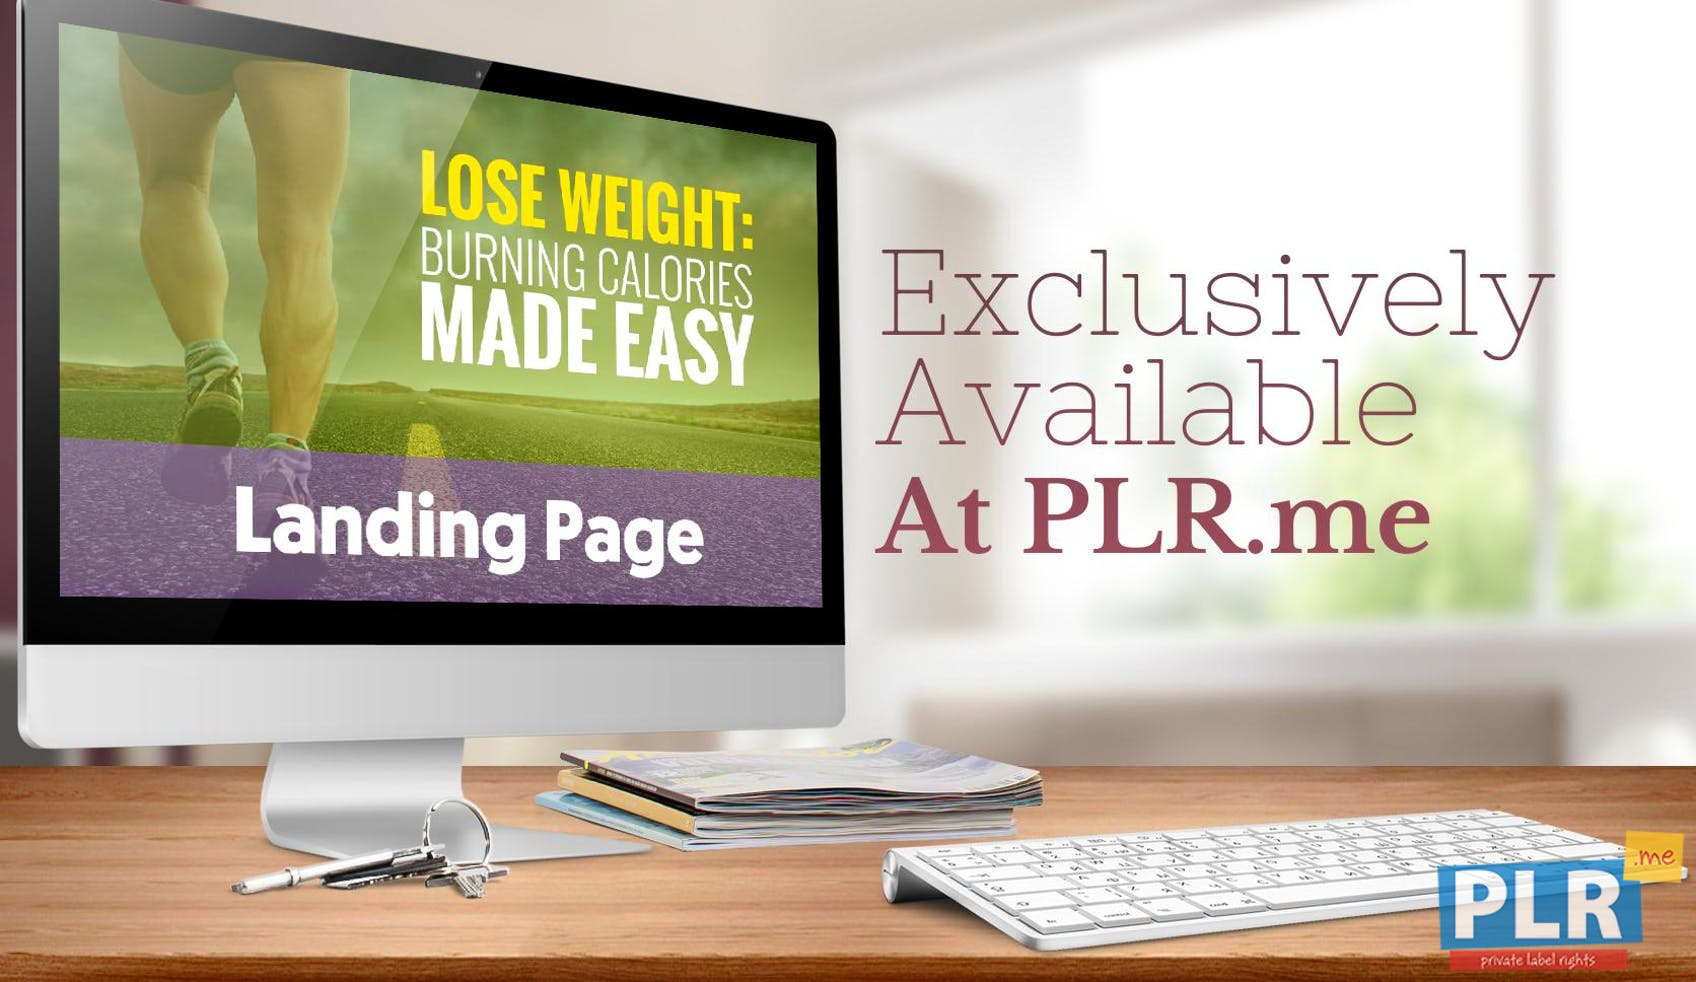 Lose Weight: Burning Calories Made Easy - Landing Page